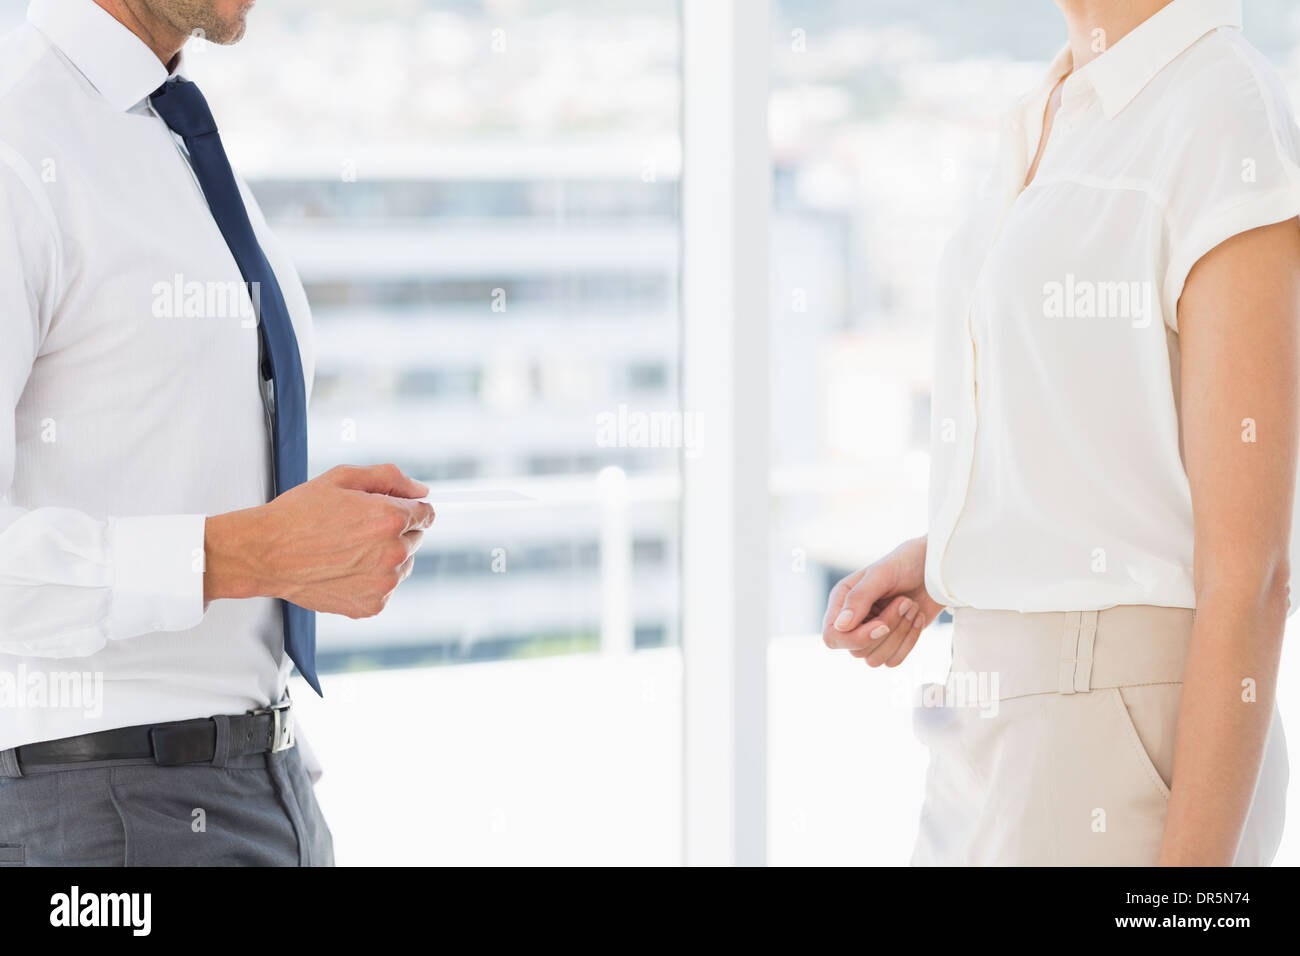 Mid section of executives exchanging business card - Stock Image